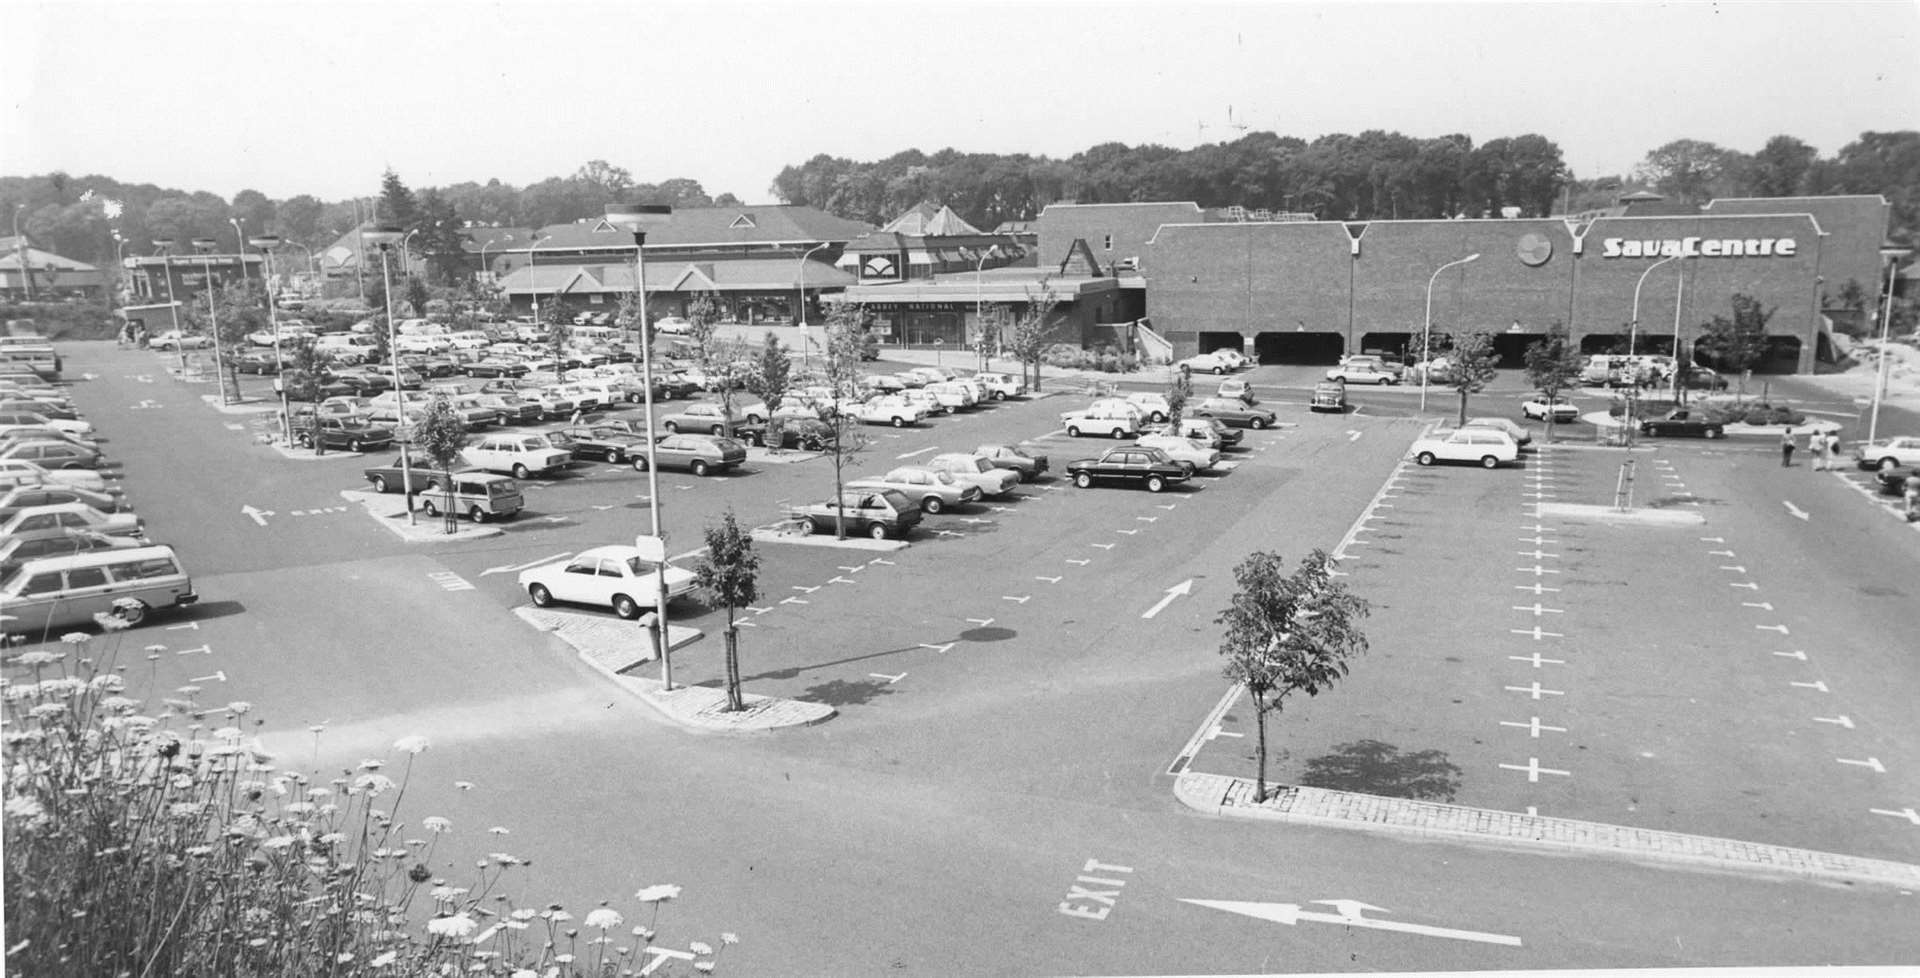 View of the former Sava Centre Shopping complex, now Hempstead Valley in Gillingham in July 1982